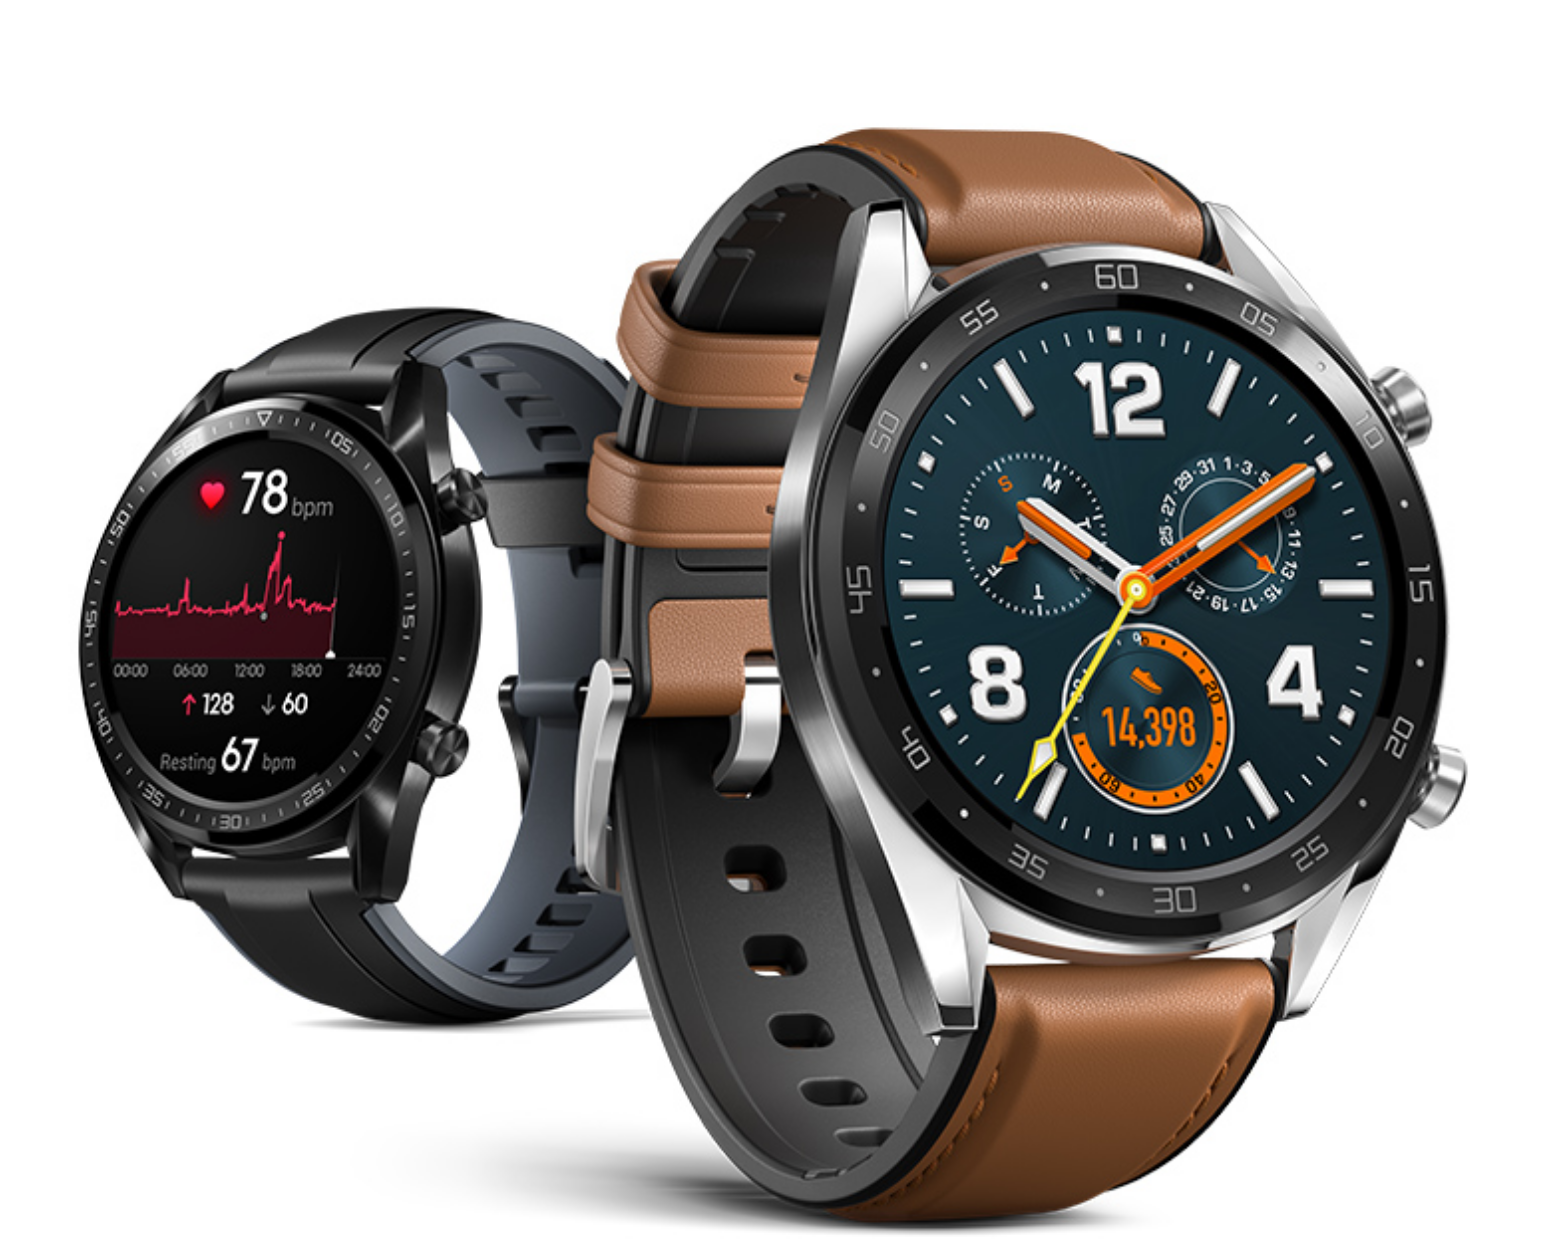 Huawei Watch GT montre connectee sport - Blog SFAM